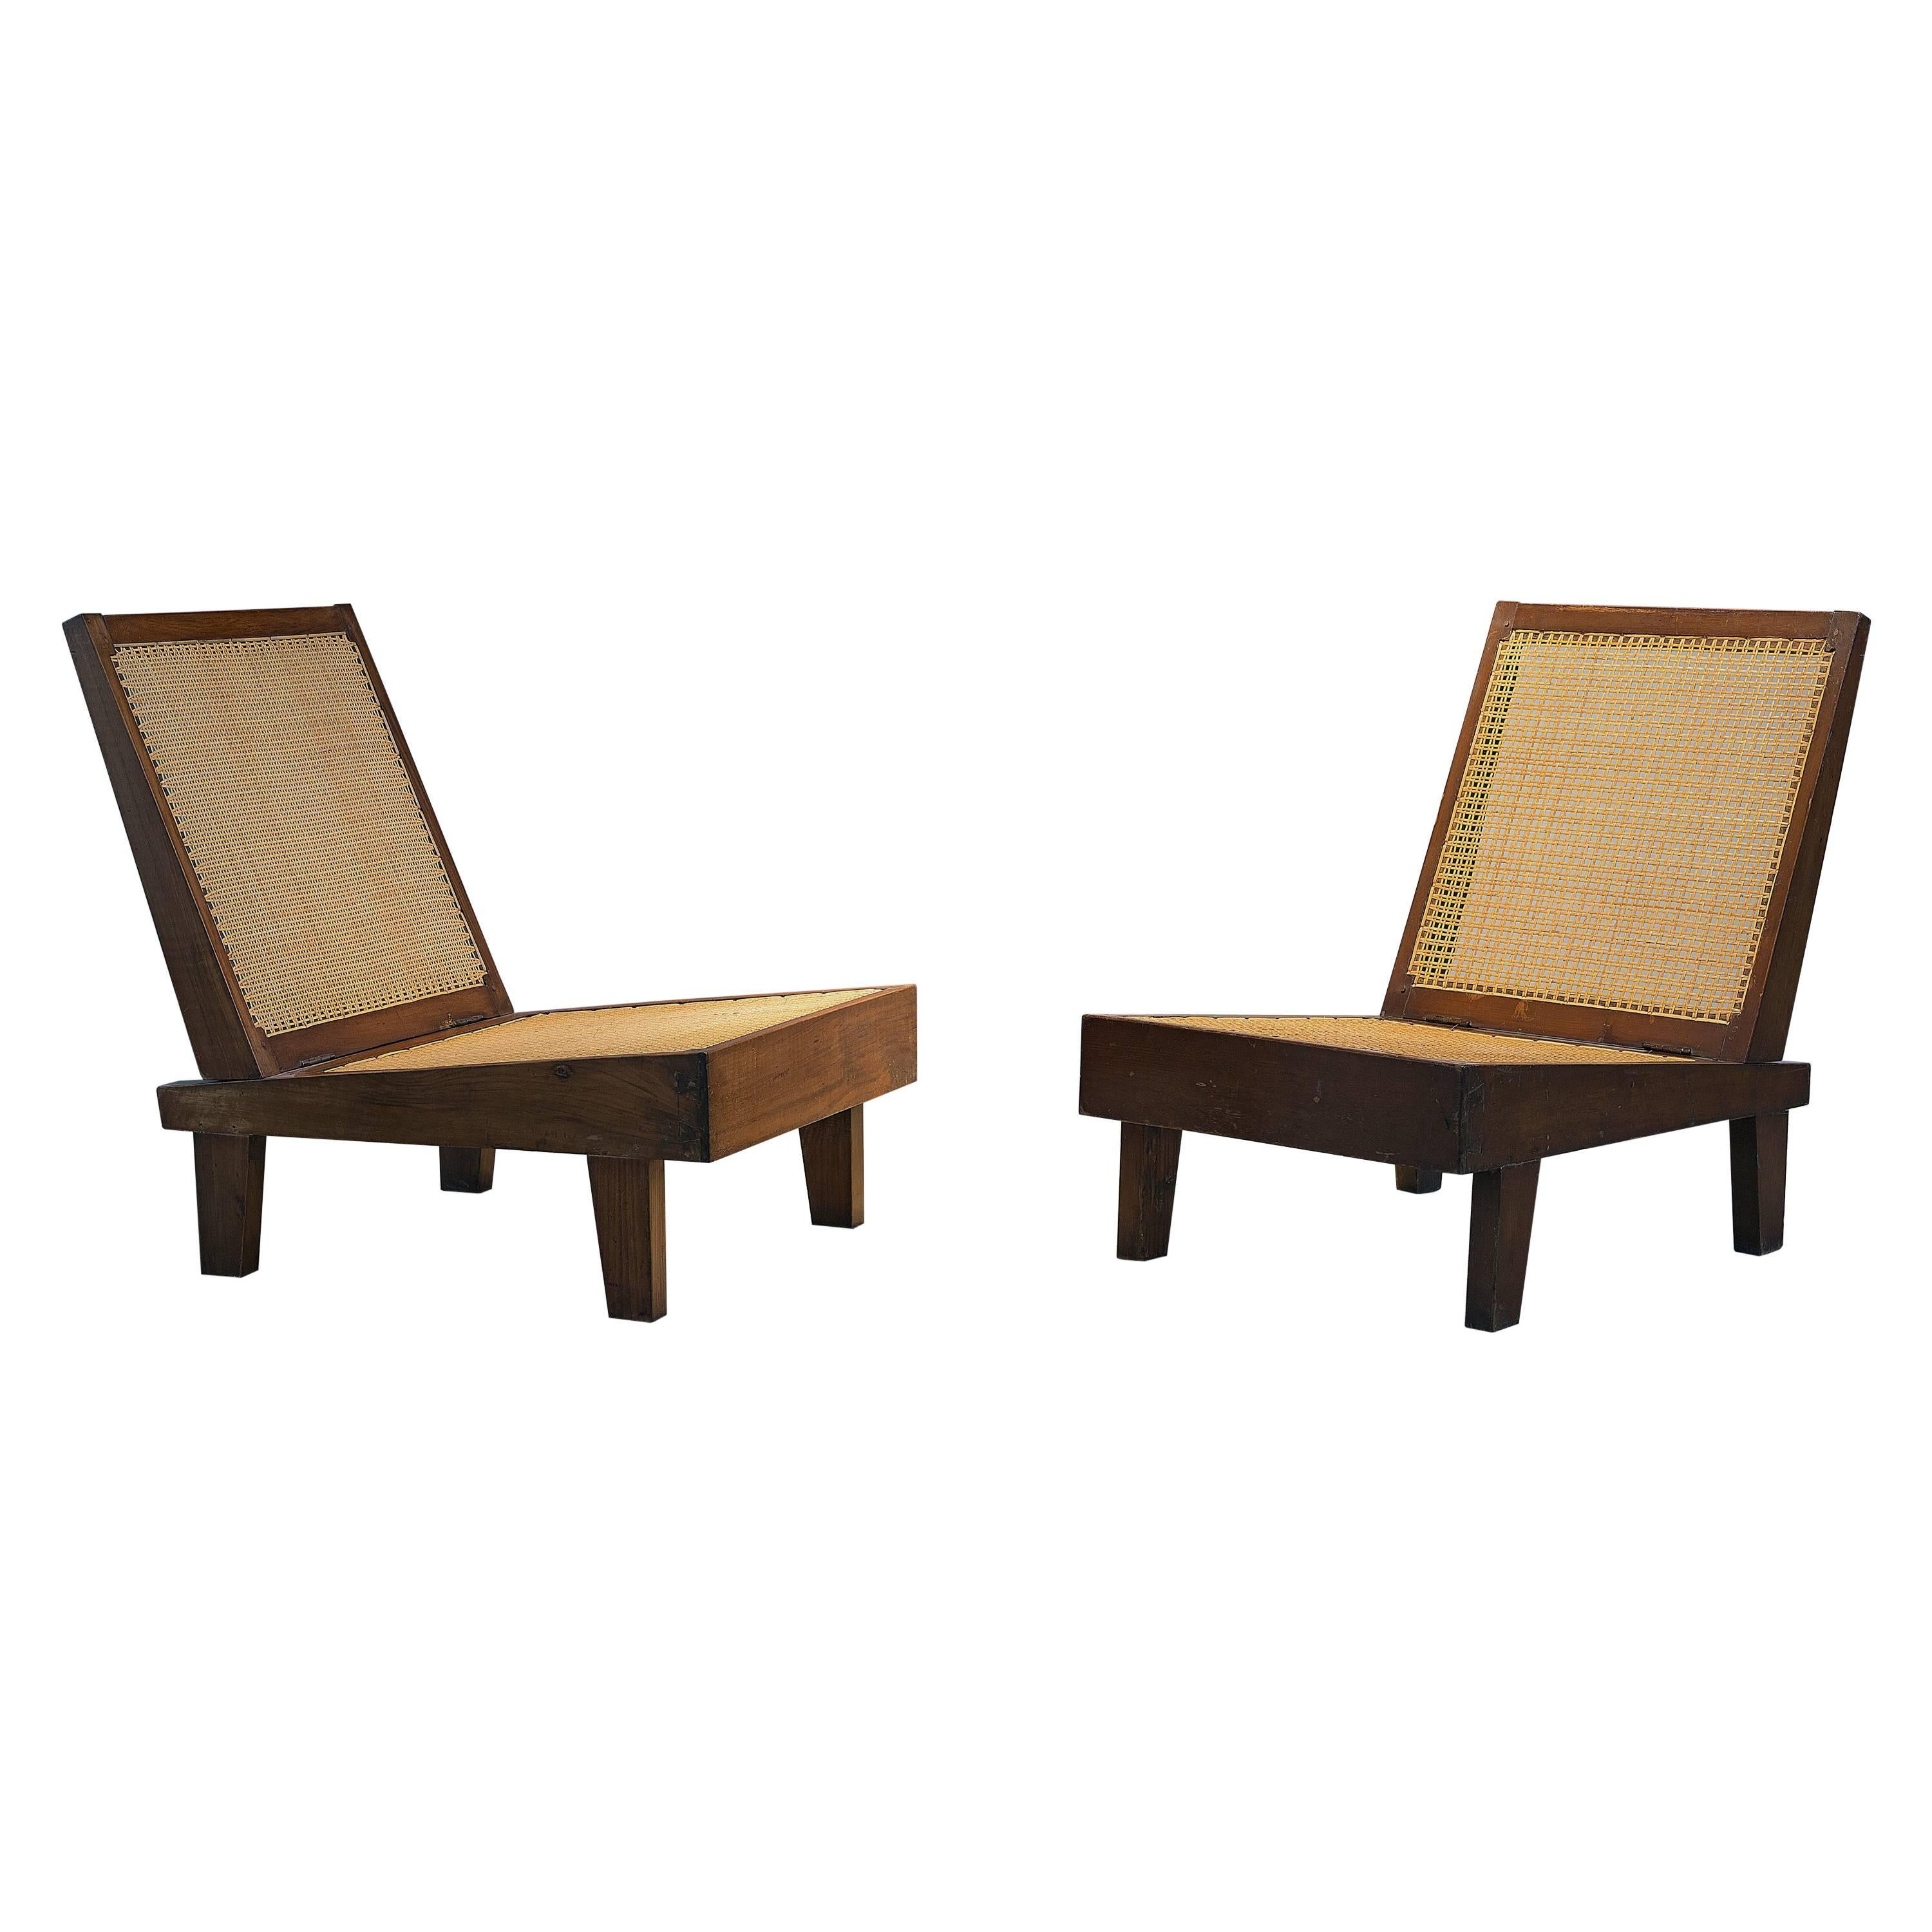 folding chairs for sale eames chair knock off pierre jeanneret pj si 61 a chandigarh teak and